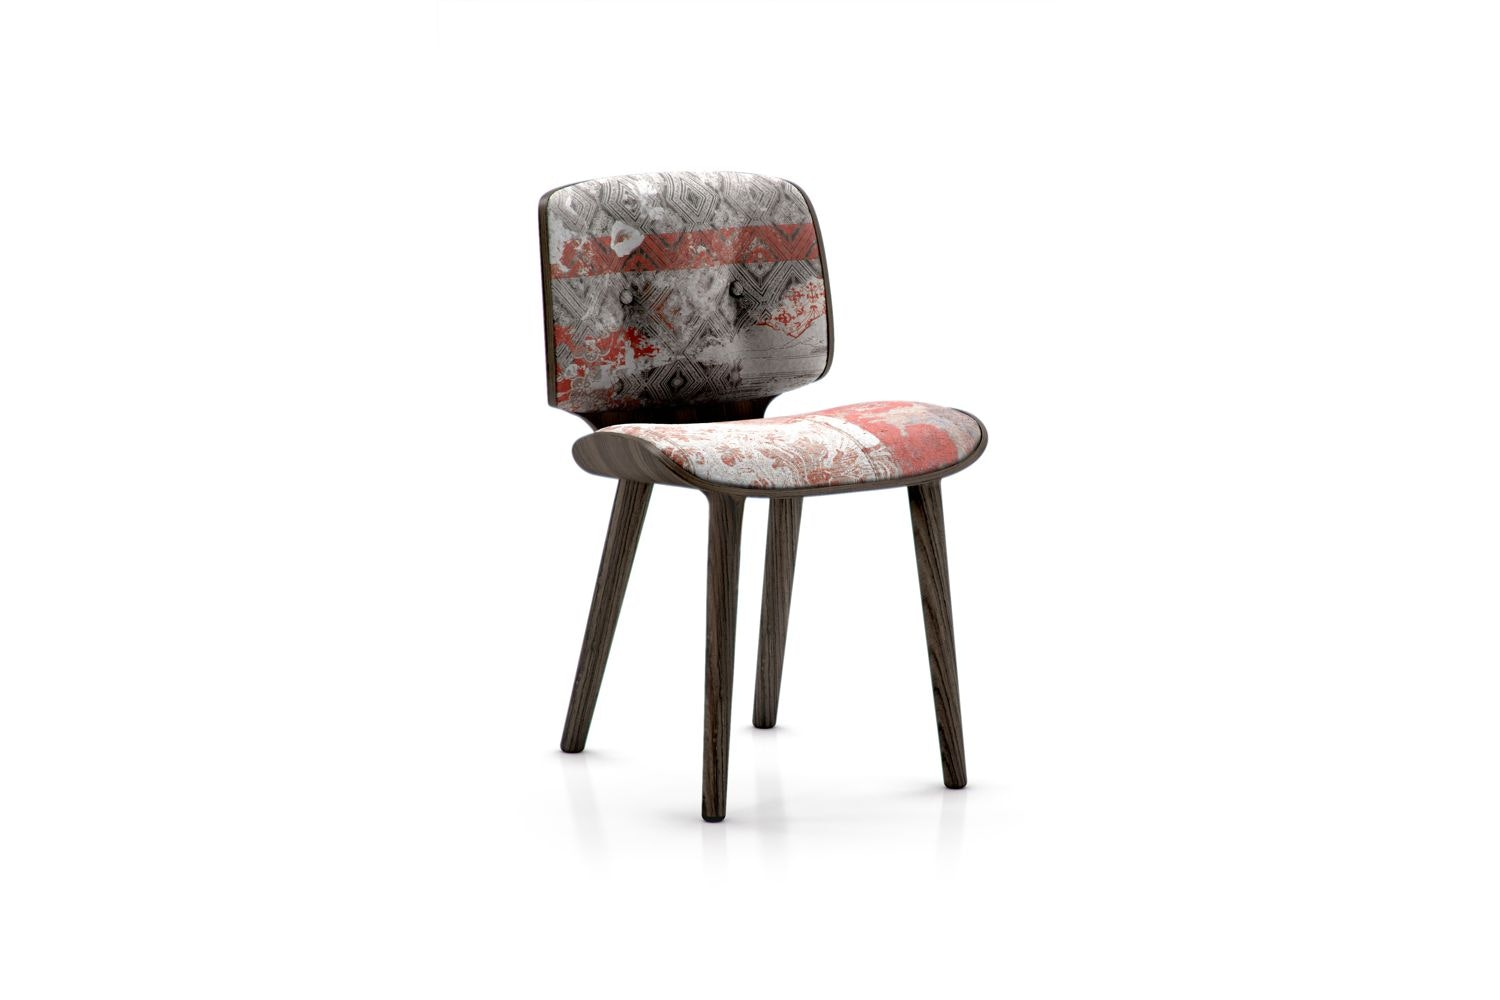 Nut Dining Chair by Marcel Wanders for Moooi